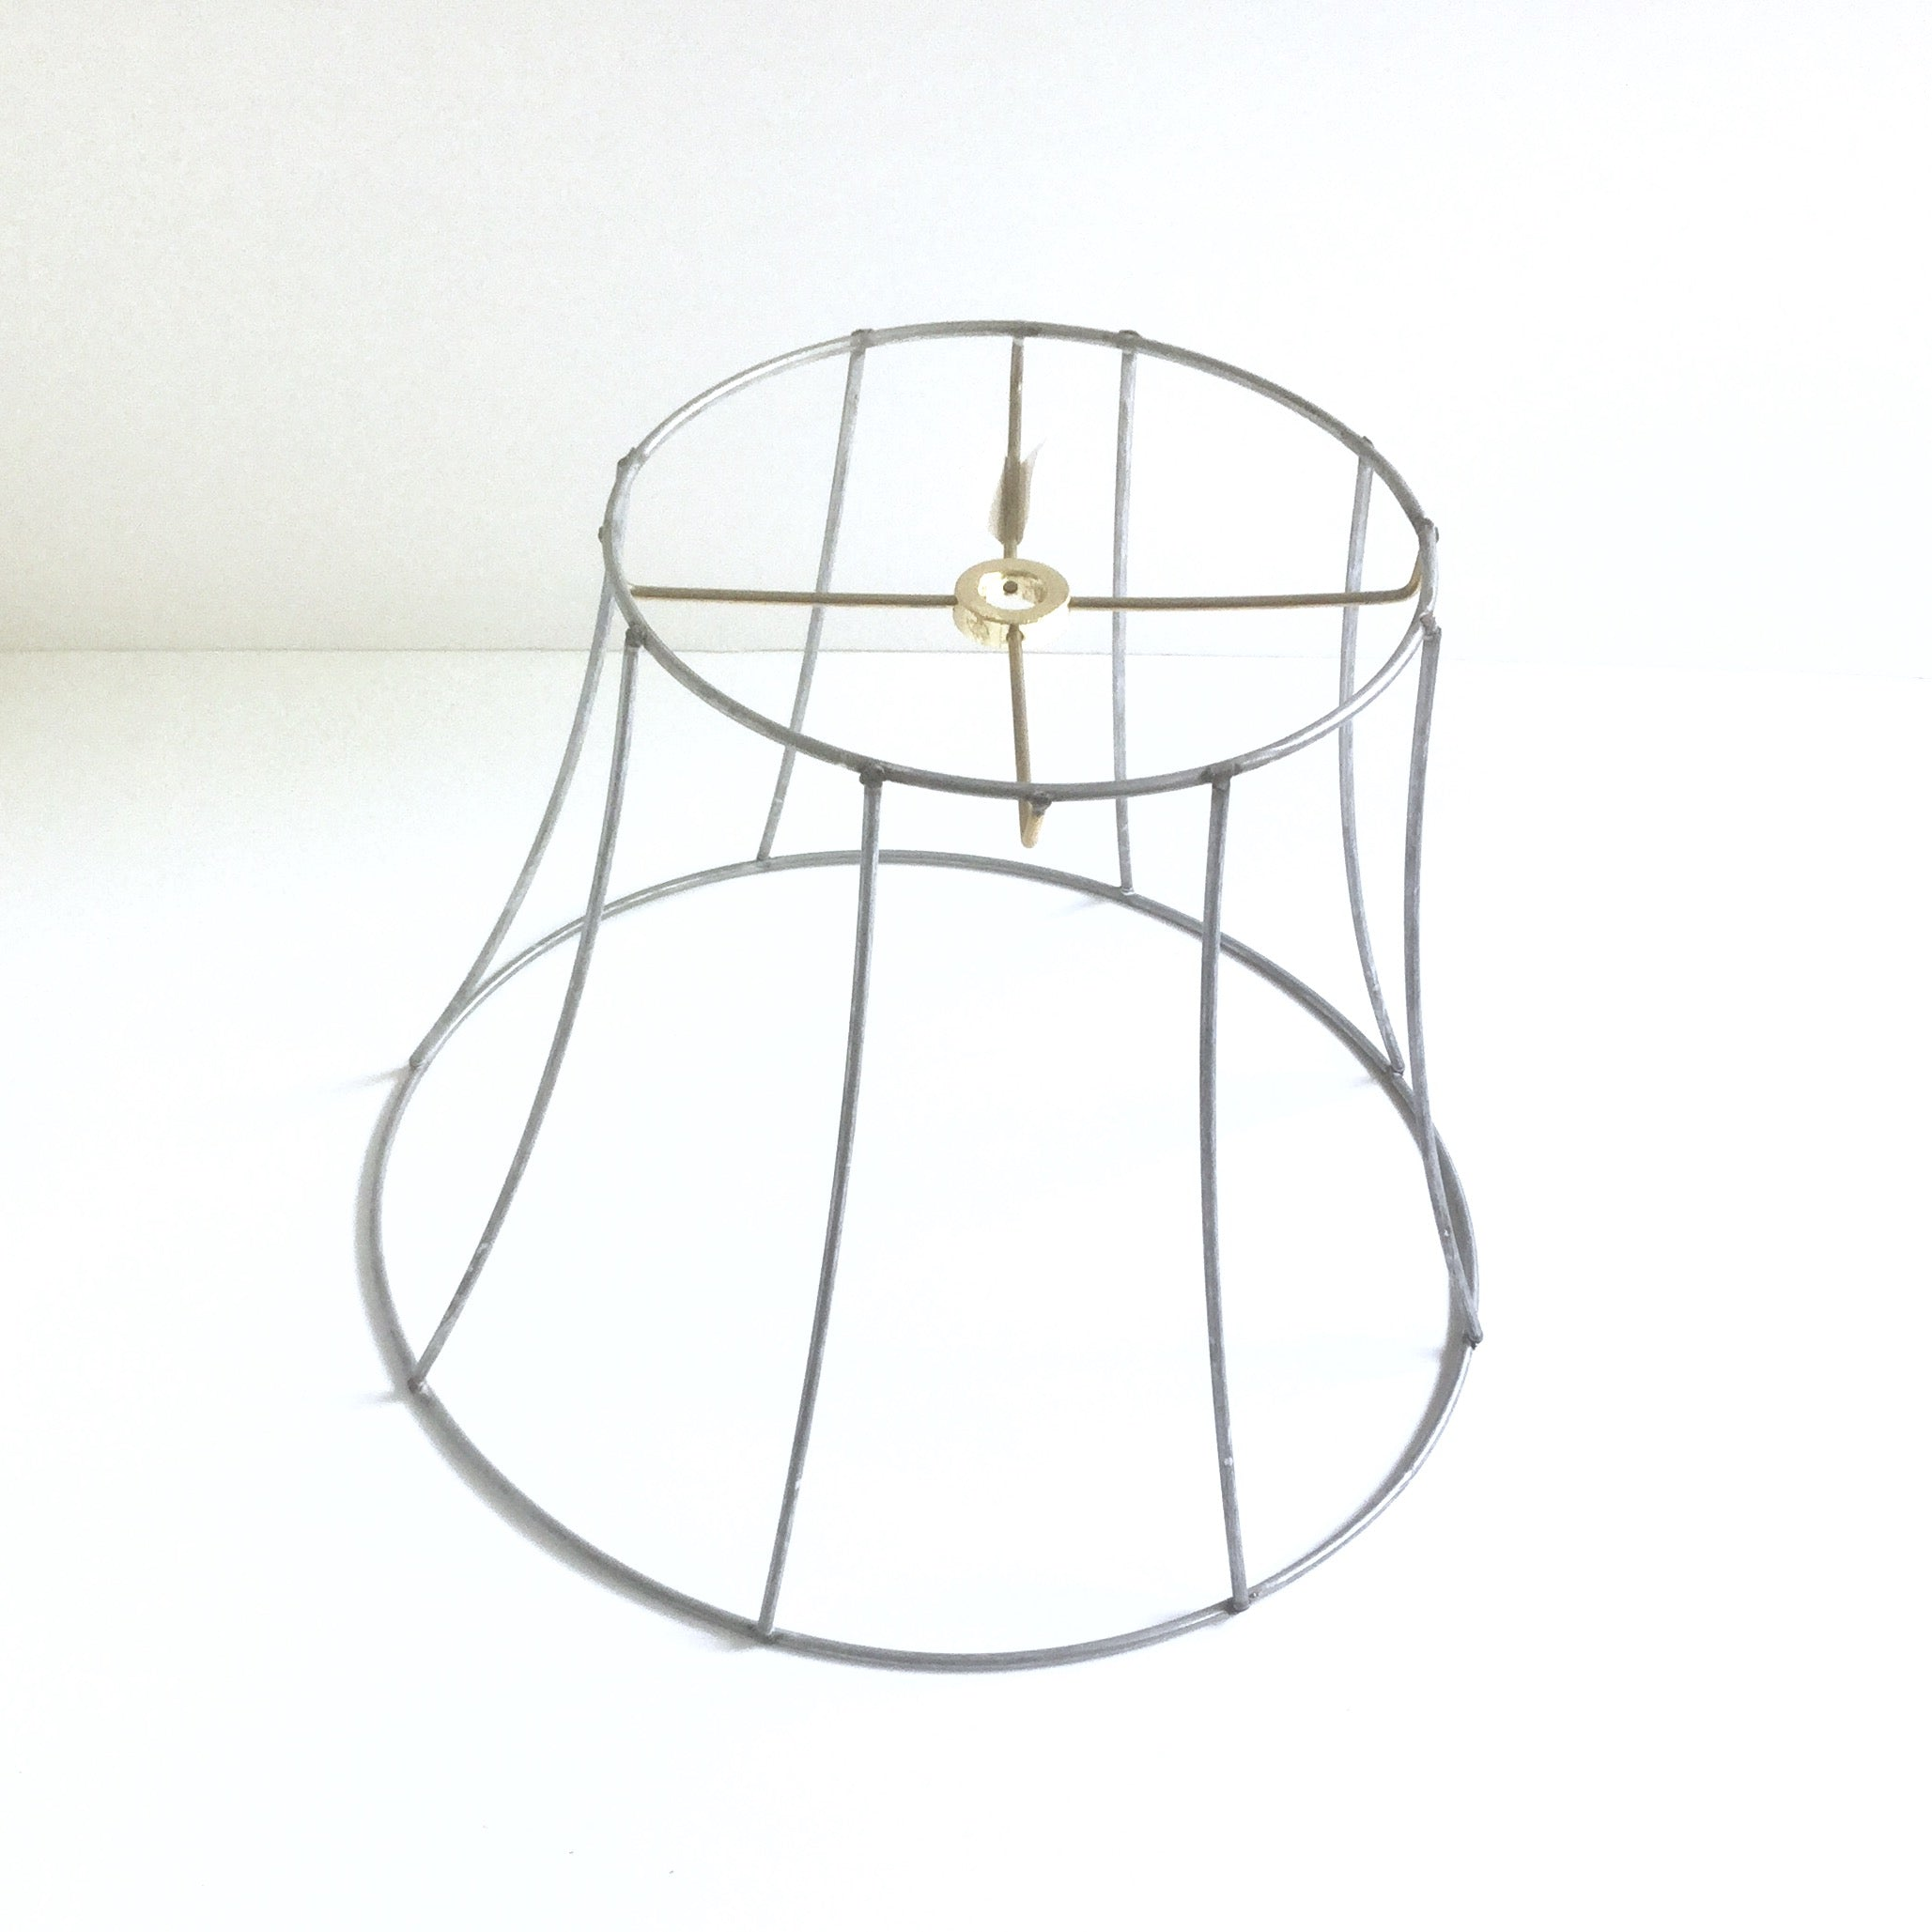 Lamp Shade Frames, Wire – Rose Mille